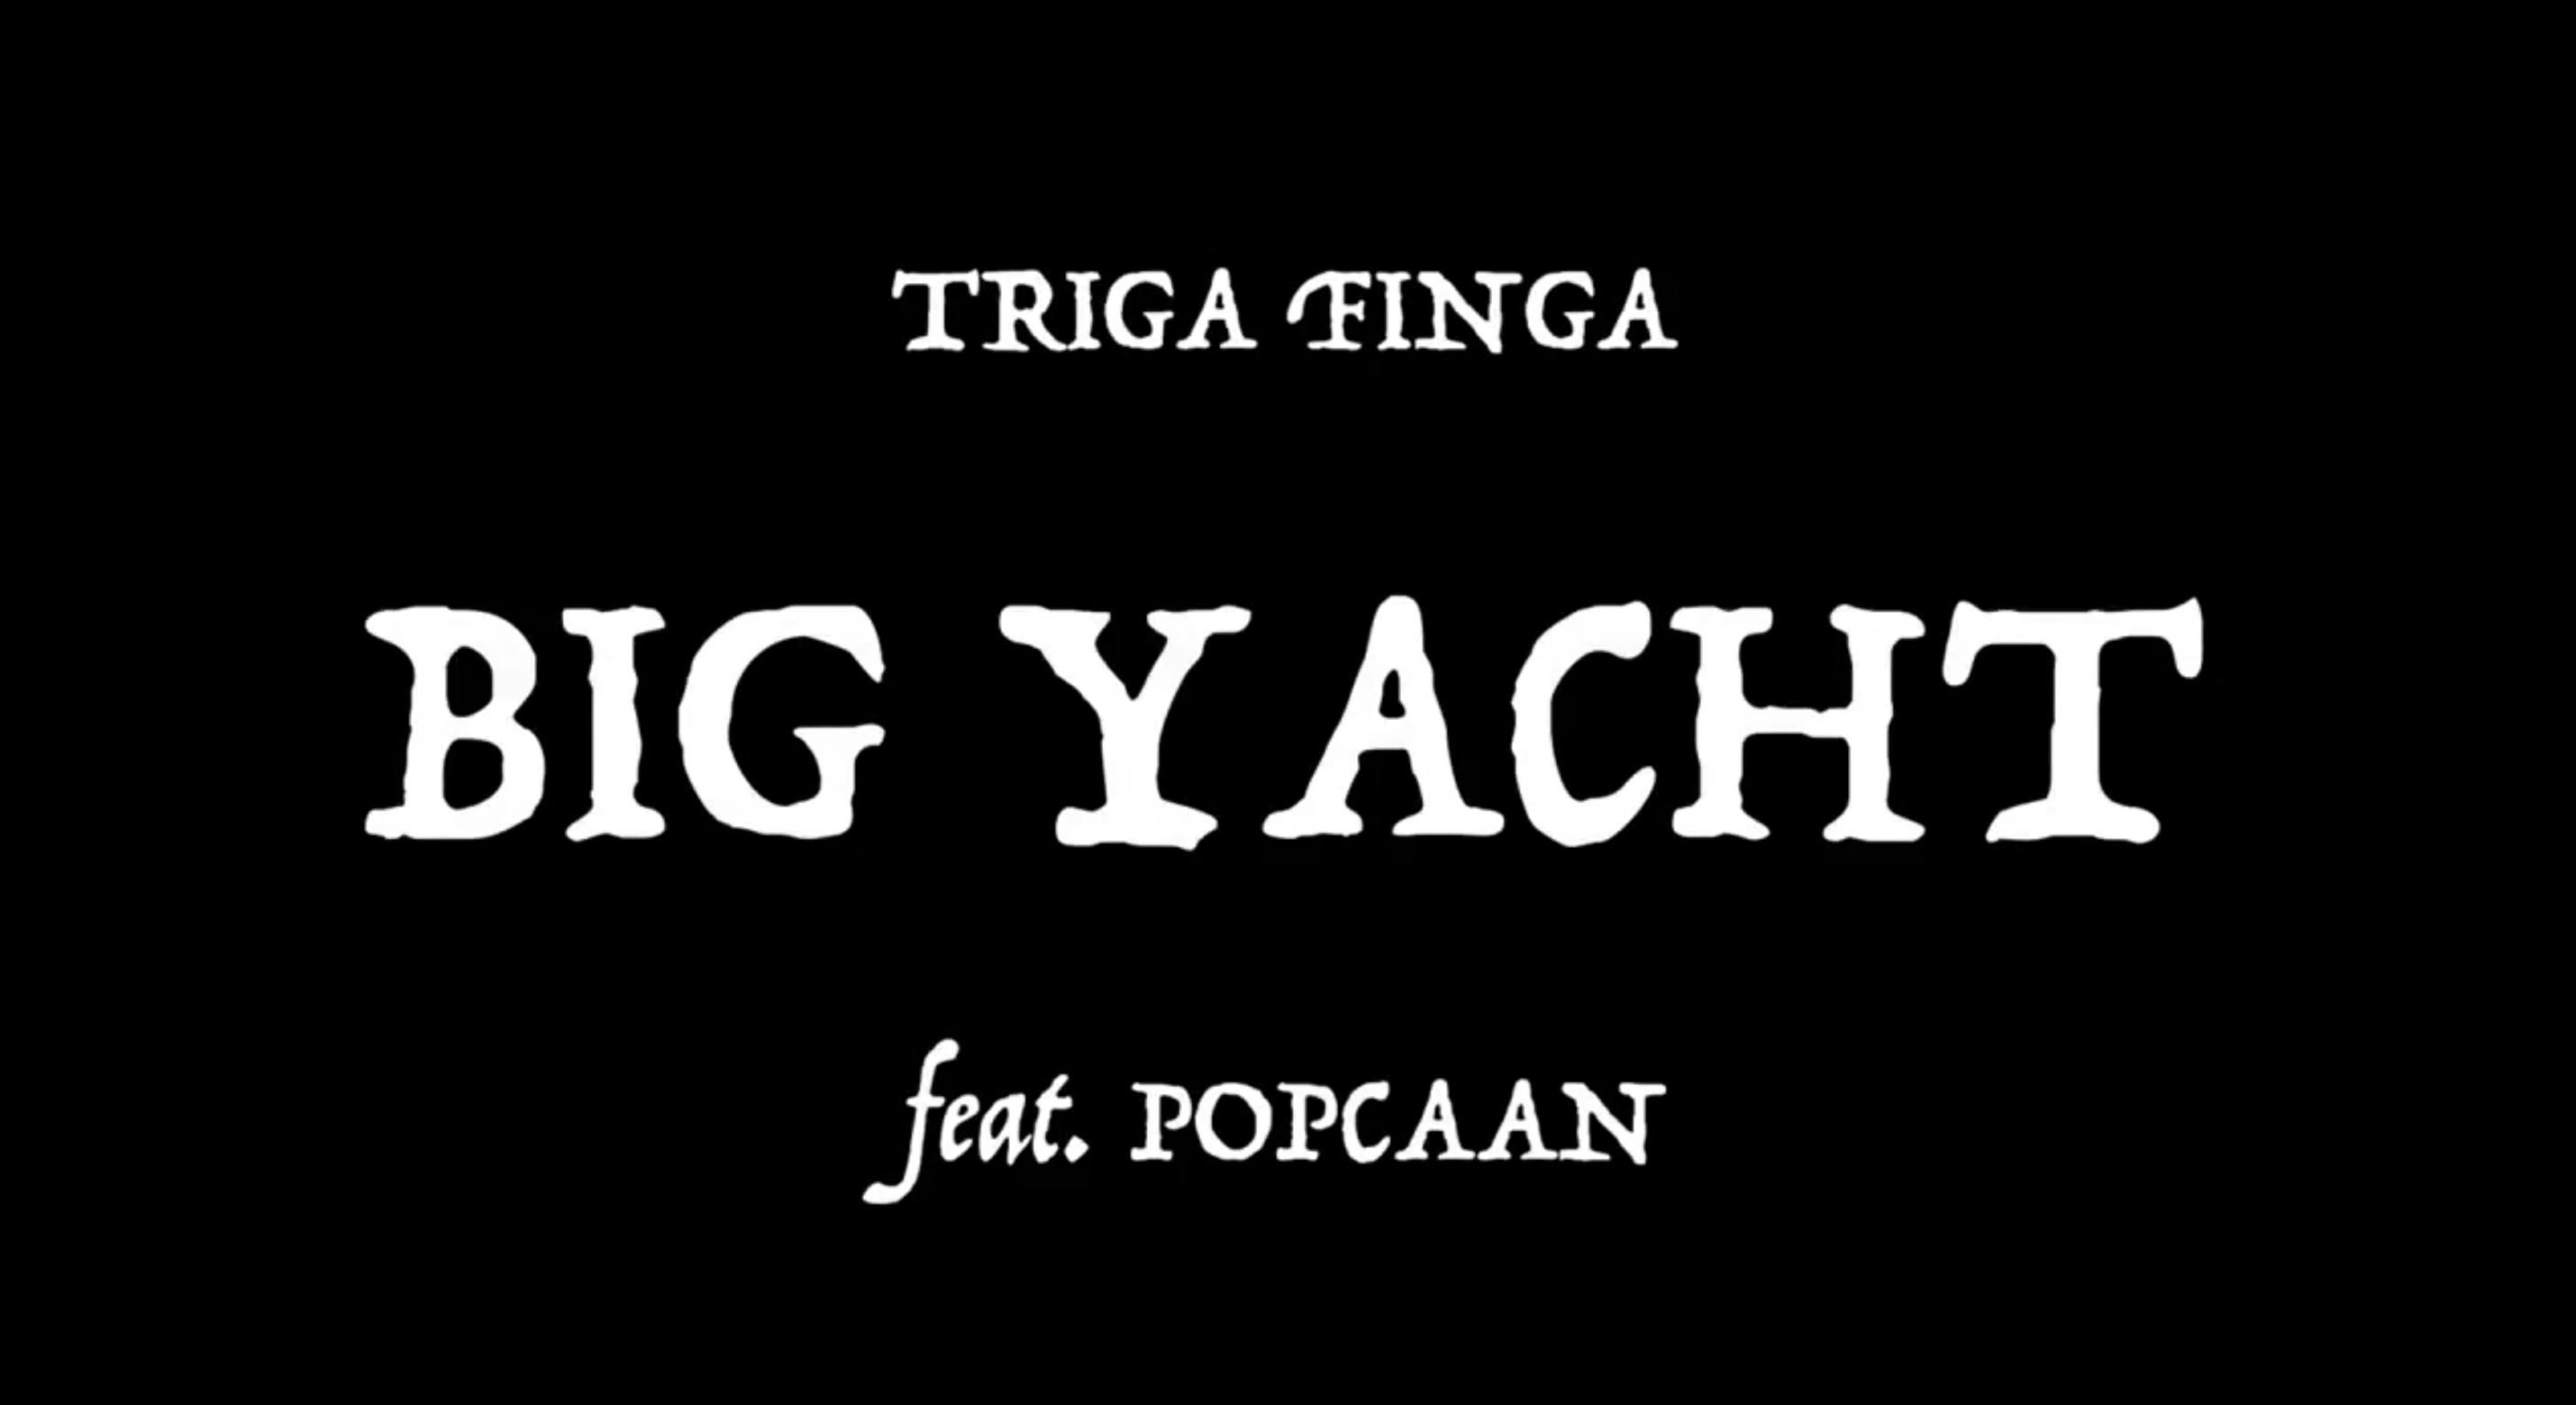 Triga Finga - Big Yacht ft. Popcaan